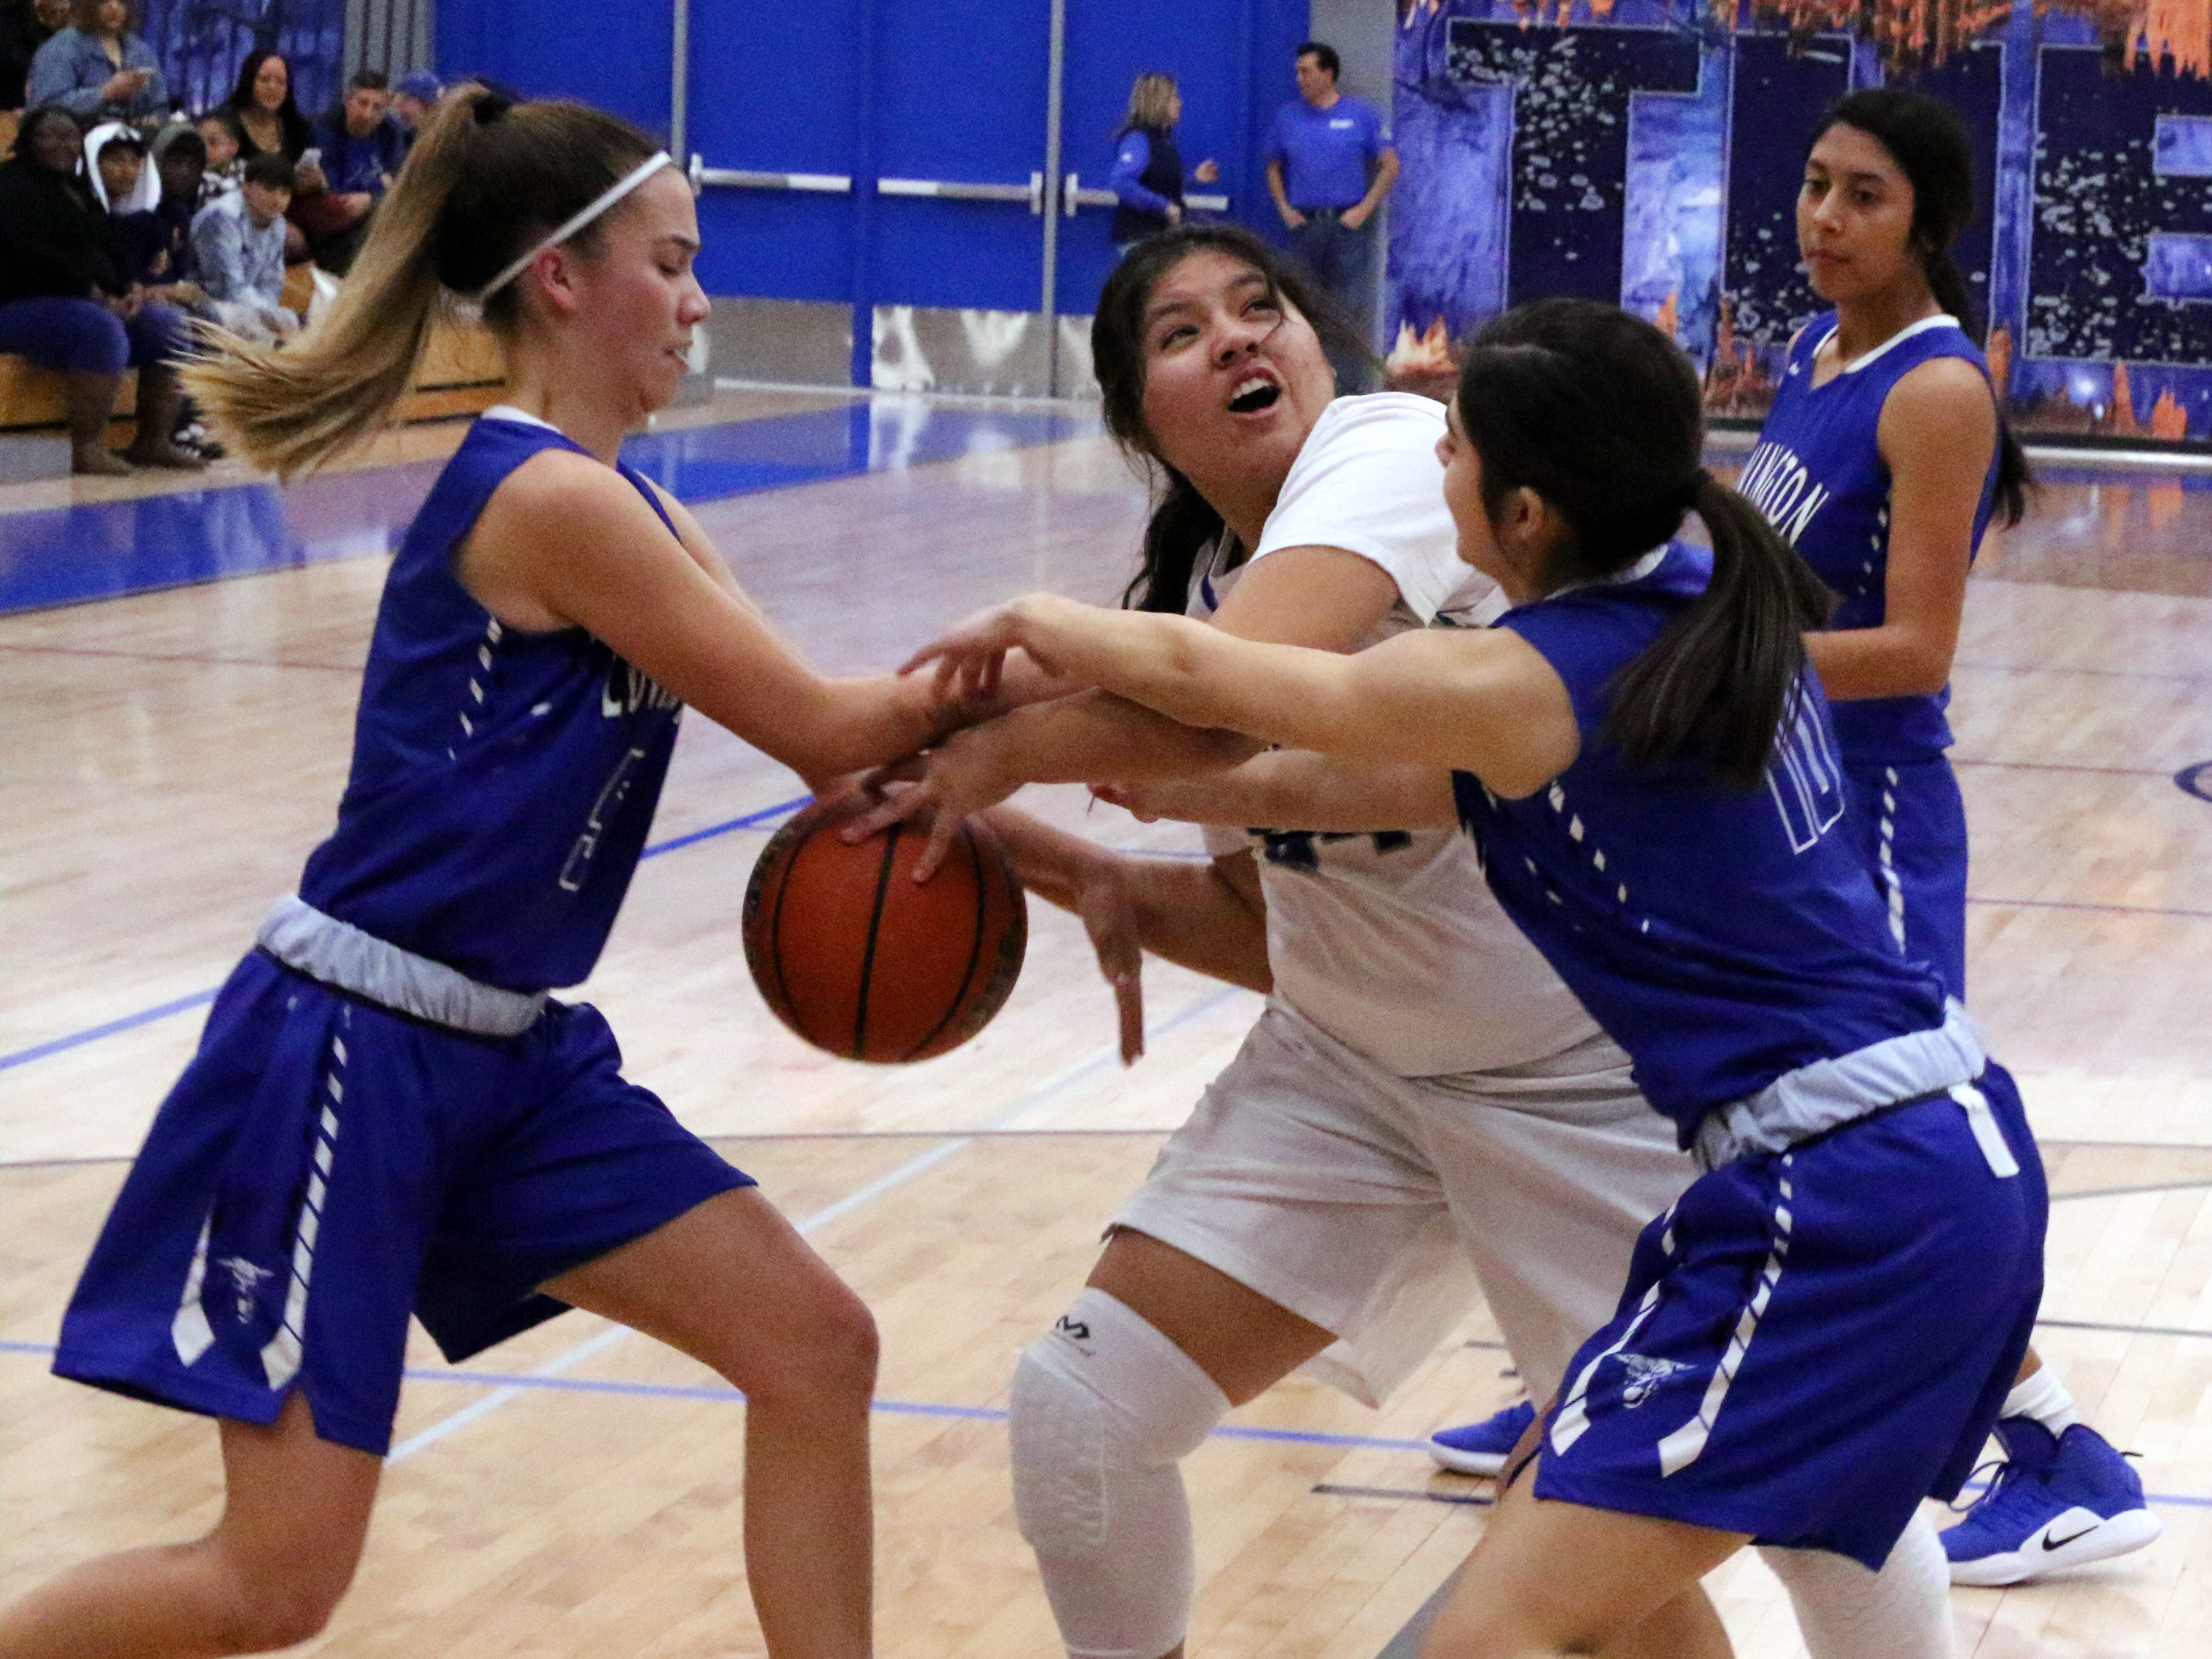 McKenzie Ruiz is fouled going for a shot during Tuesday's game against Lovington.